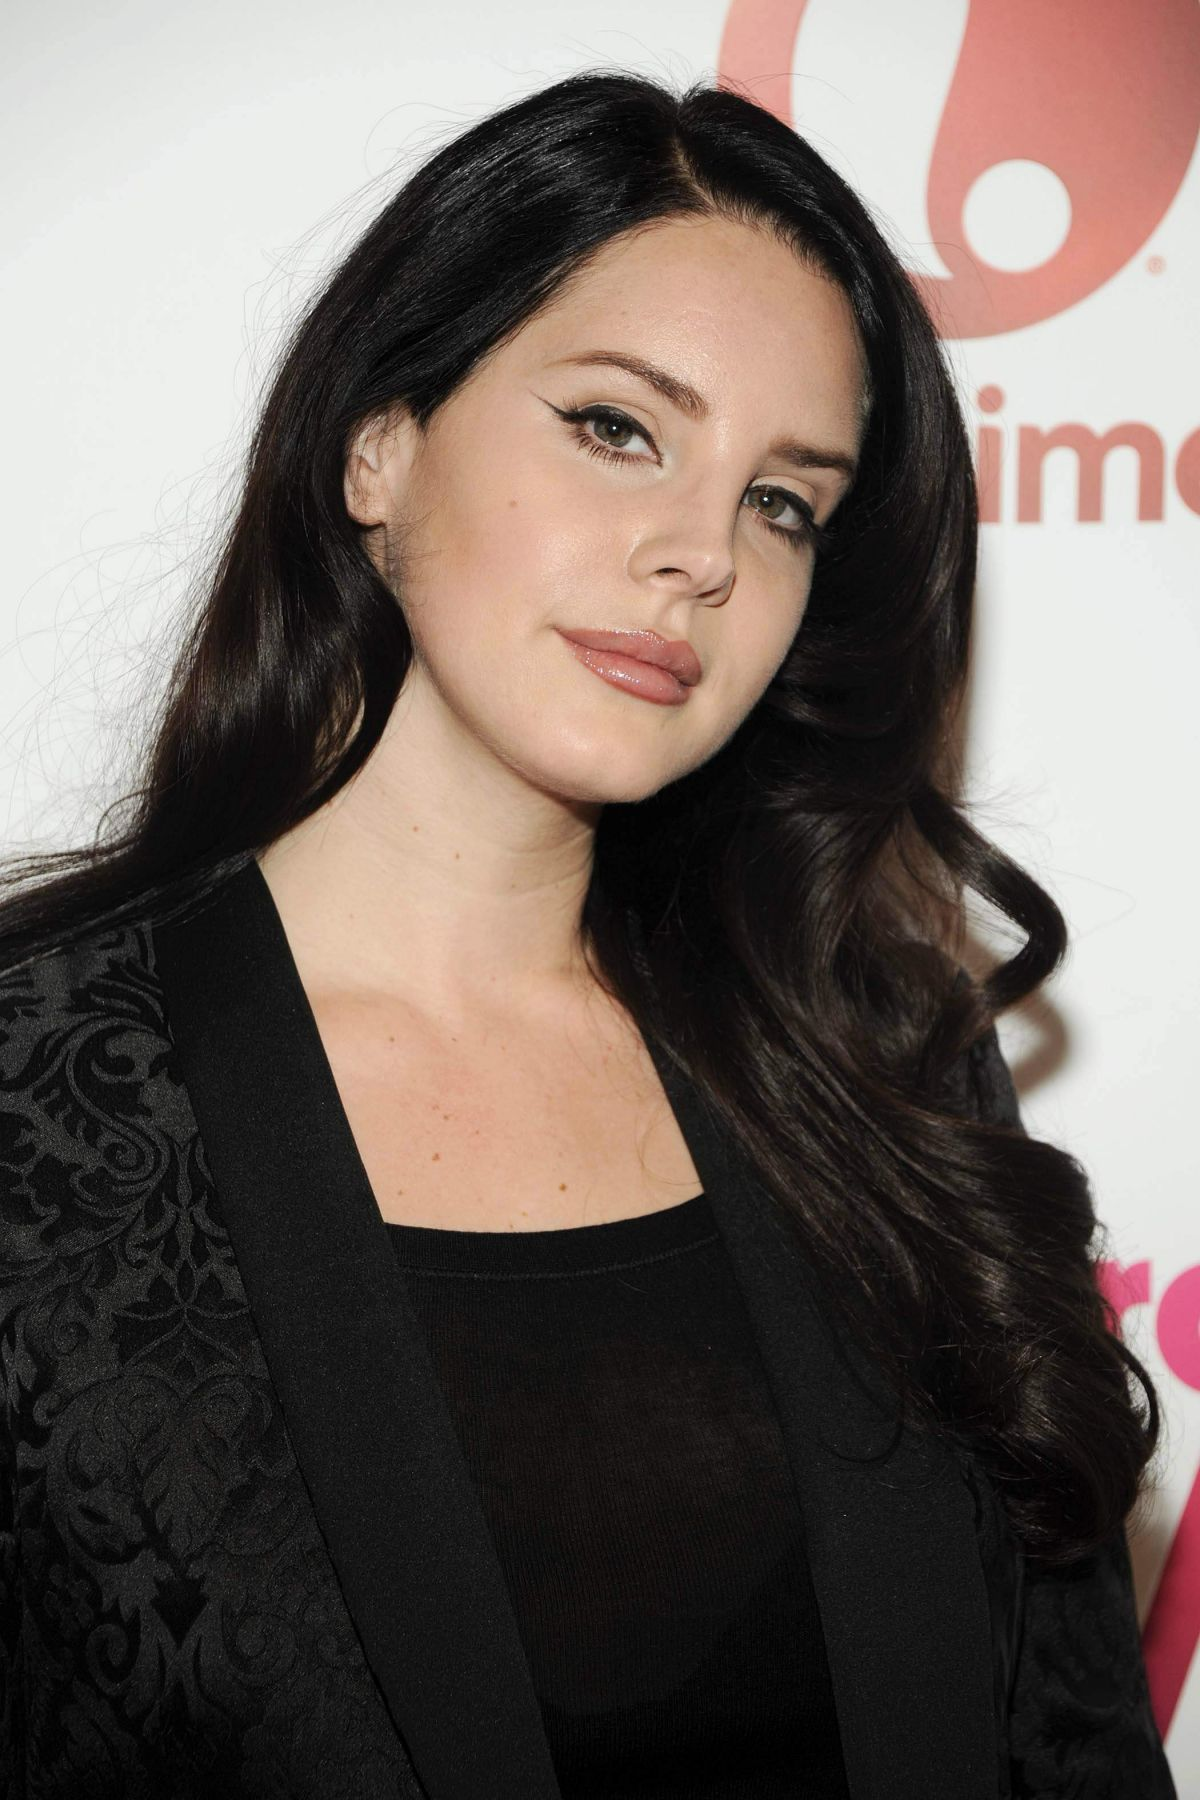 LANA DEL REY at Billboard's 10th Annual Women in Music Awards in New York 12/11/2015